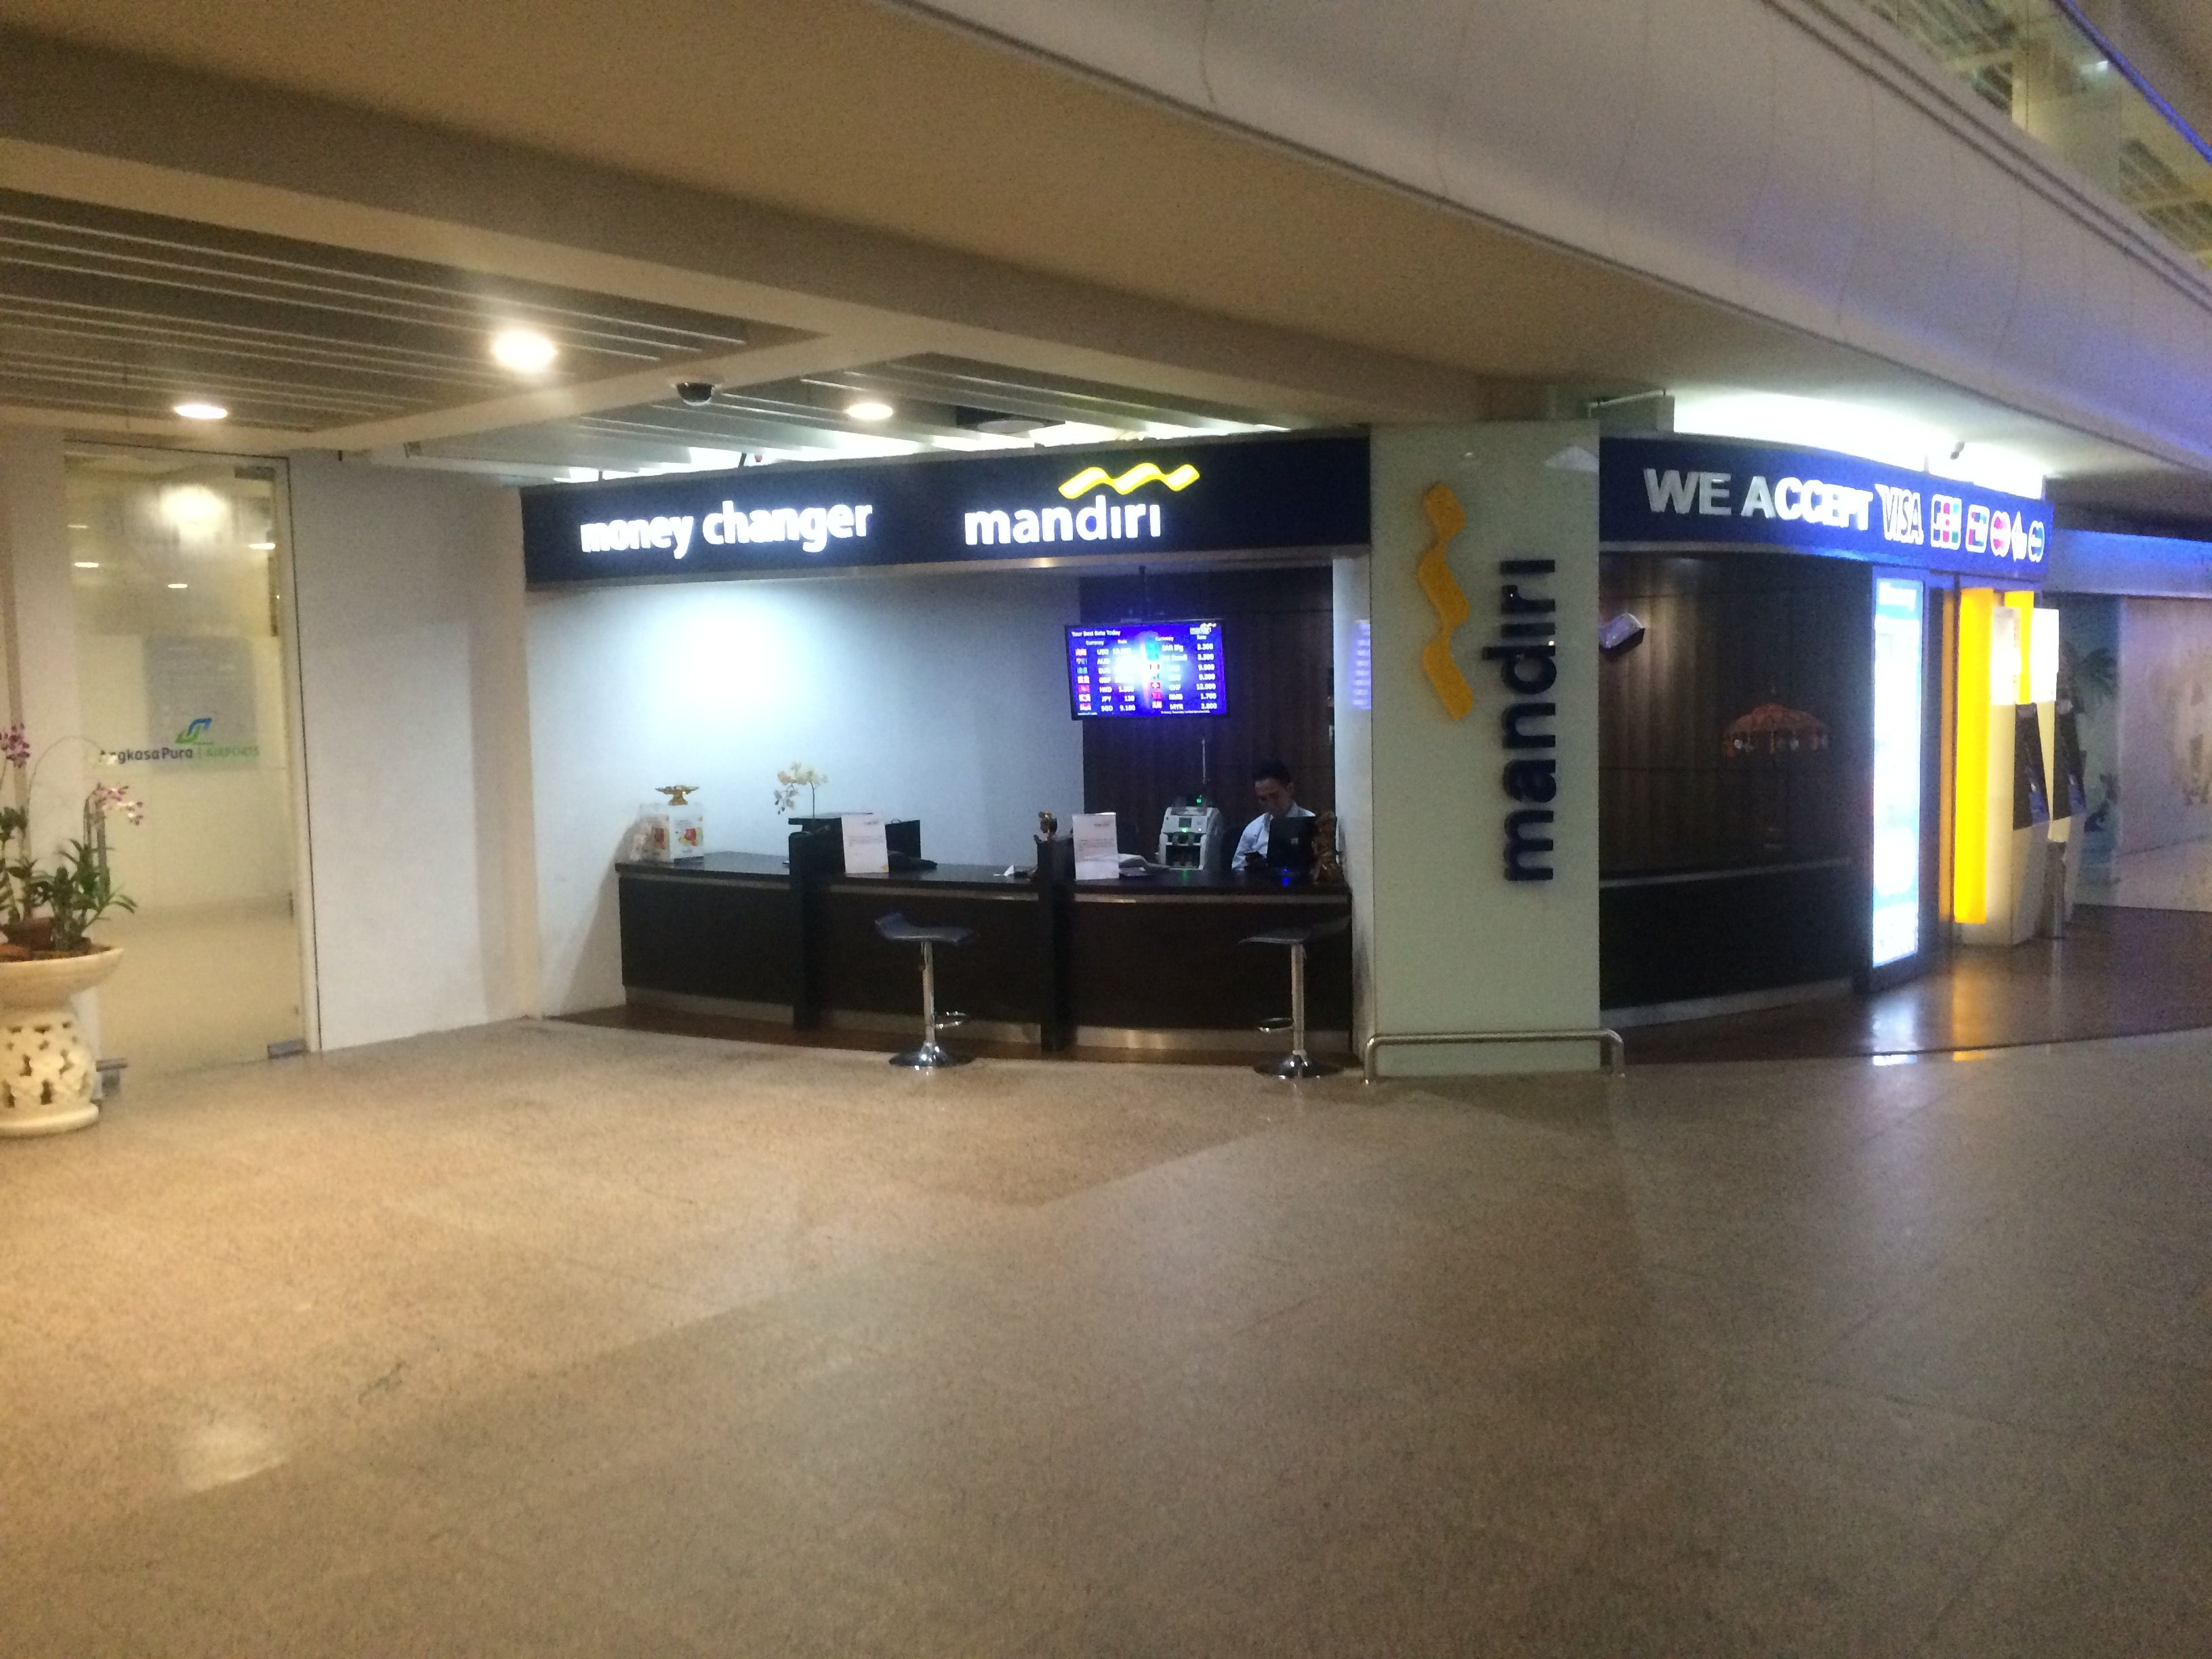 bank mandiri in arrivals hall. there are x3 money exchangers located in the arrivals hall along with ATM'S. The exchange rates in the airport are considerably lower than rates in kuta/legian/seminyak/sanur/jimbaran etc